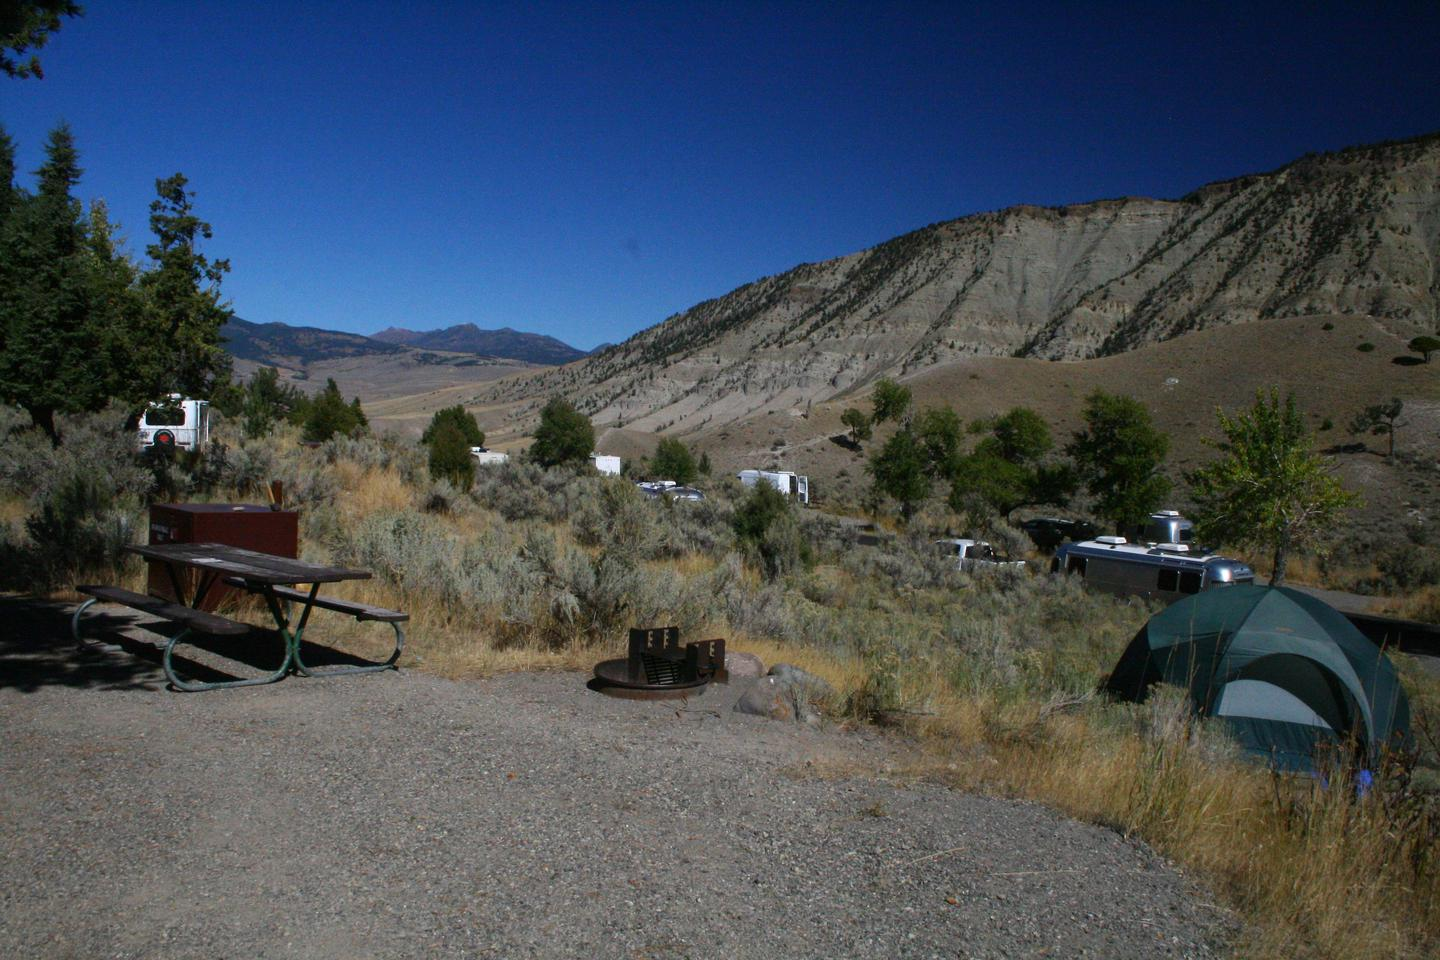 Mammoth Hot Springs Campground Site 61.Mammoth Campsite #61, looking north